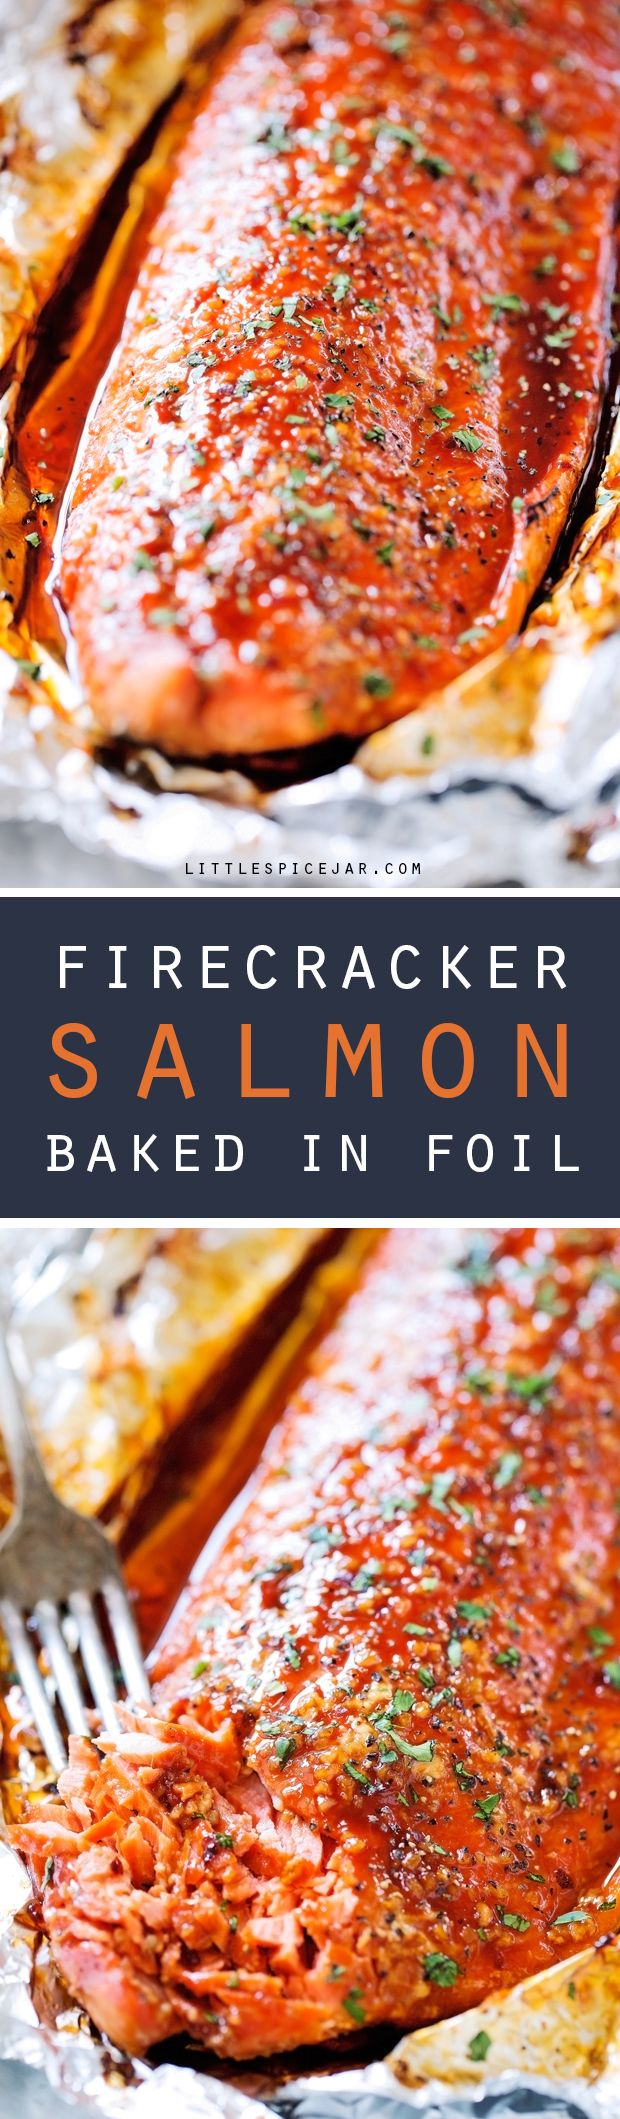 Firecracker Baked Salmon In Foil  An Easy Baked Salmon Recipe That Takes  Just 30 Minutes